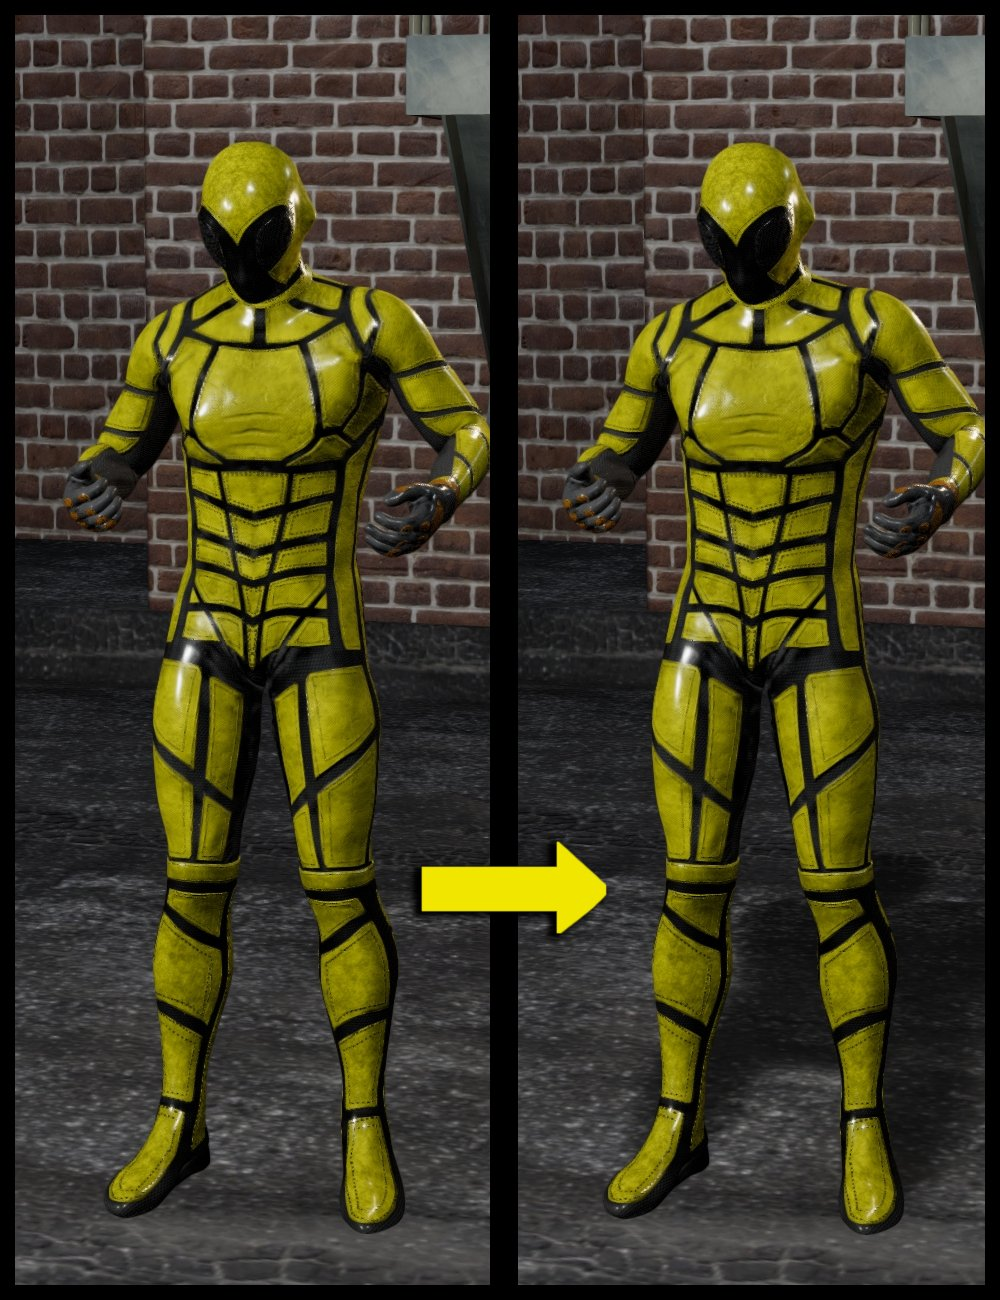 dForce SY Rigged Shadows Filament by: Sickleyield, 3D Models by Daz 3D